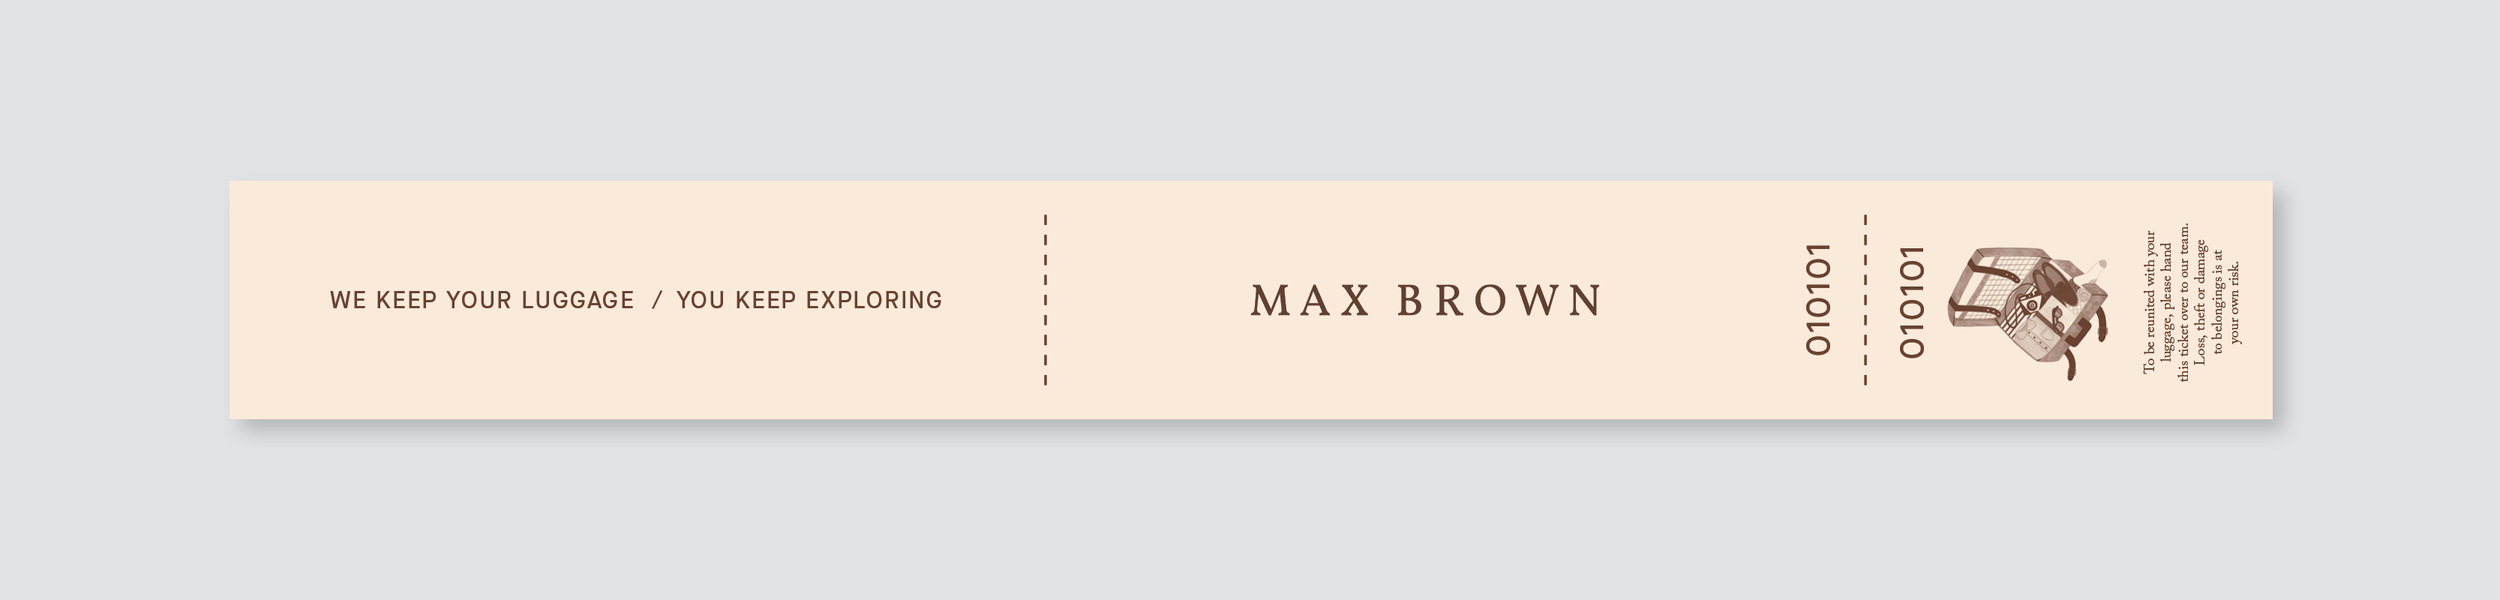 max-brown-website-section-7.jpg